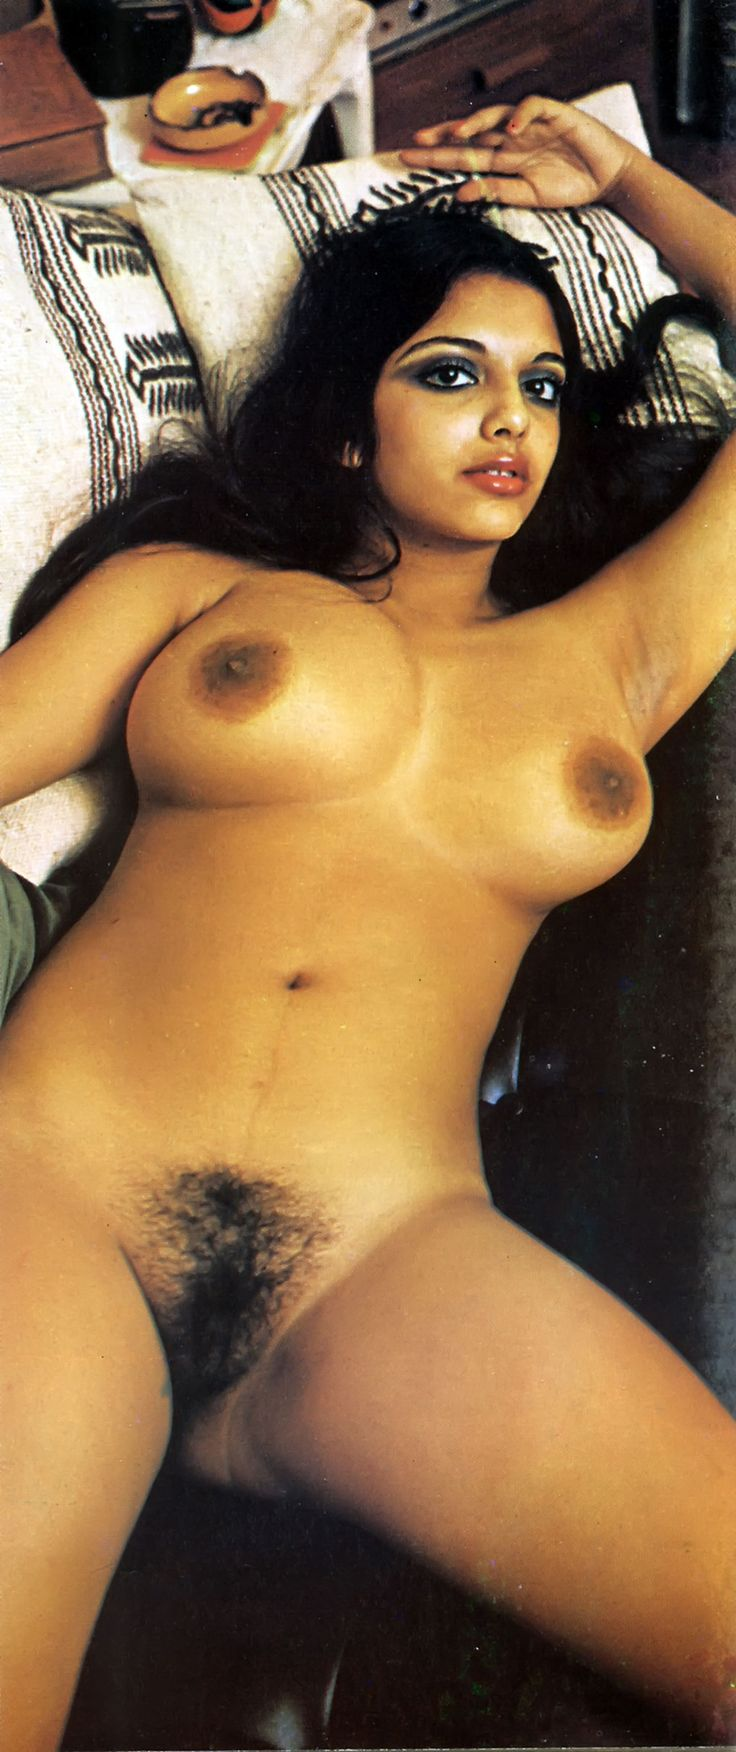 real south india girl nude pics